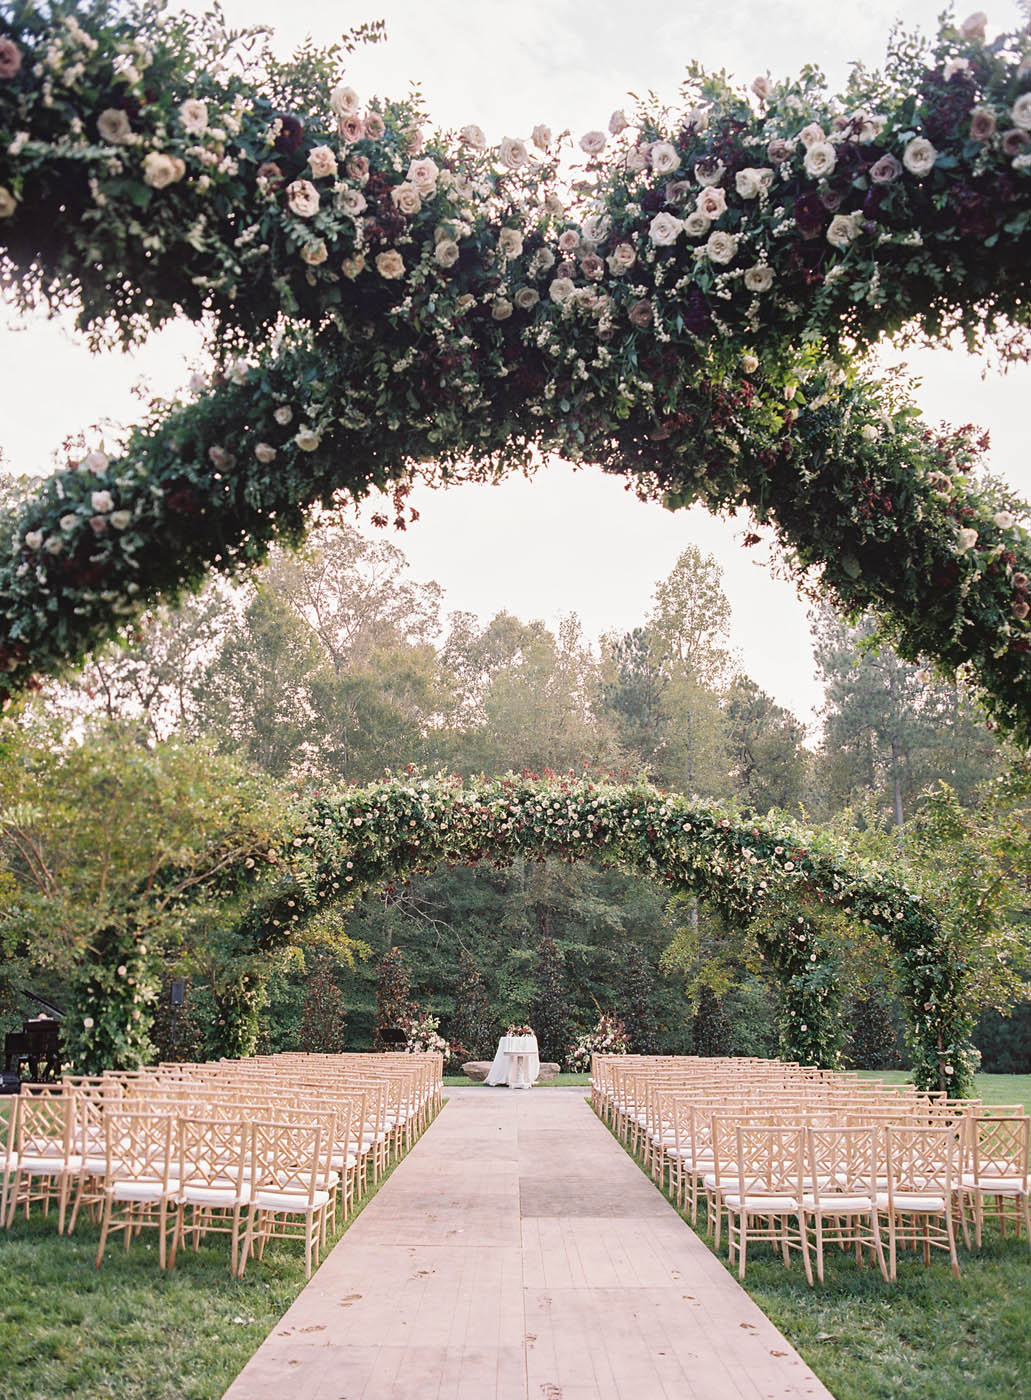 Private-estate-wedding-North-Carolina-24.jpg